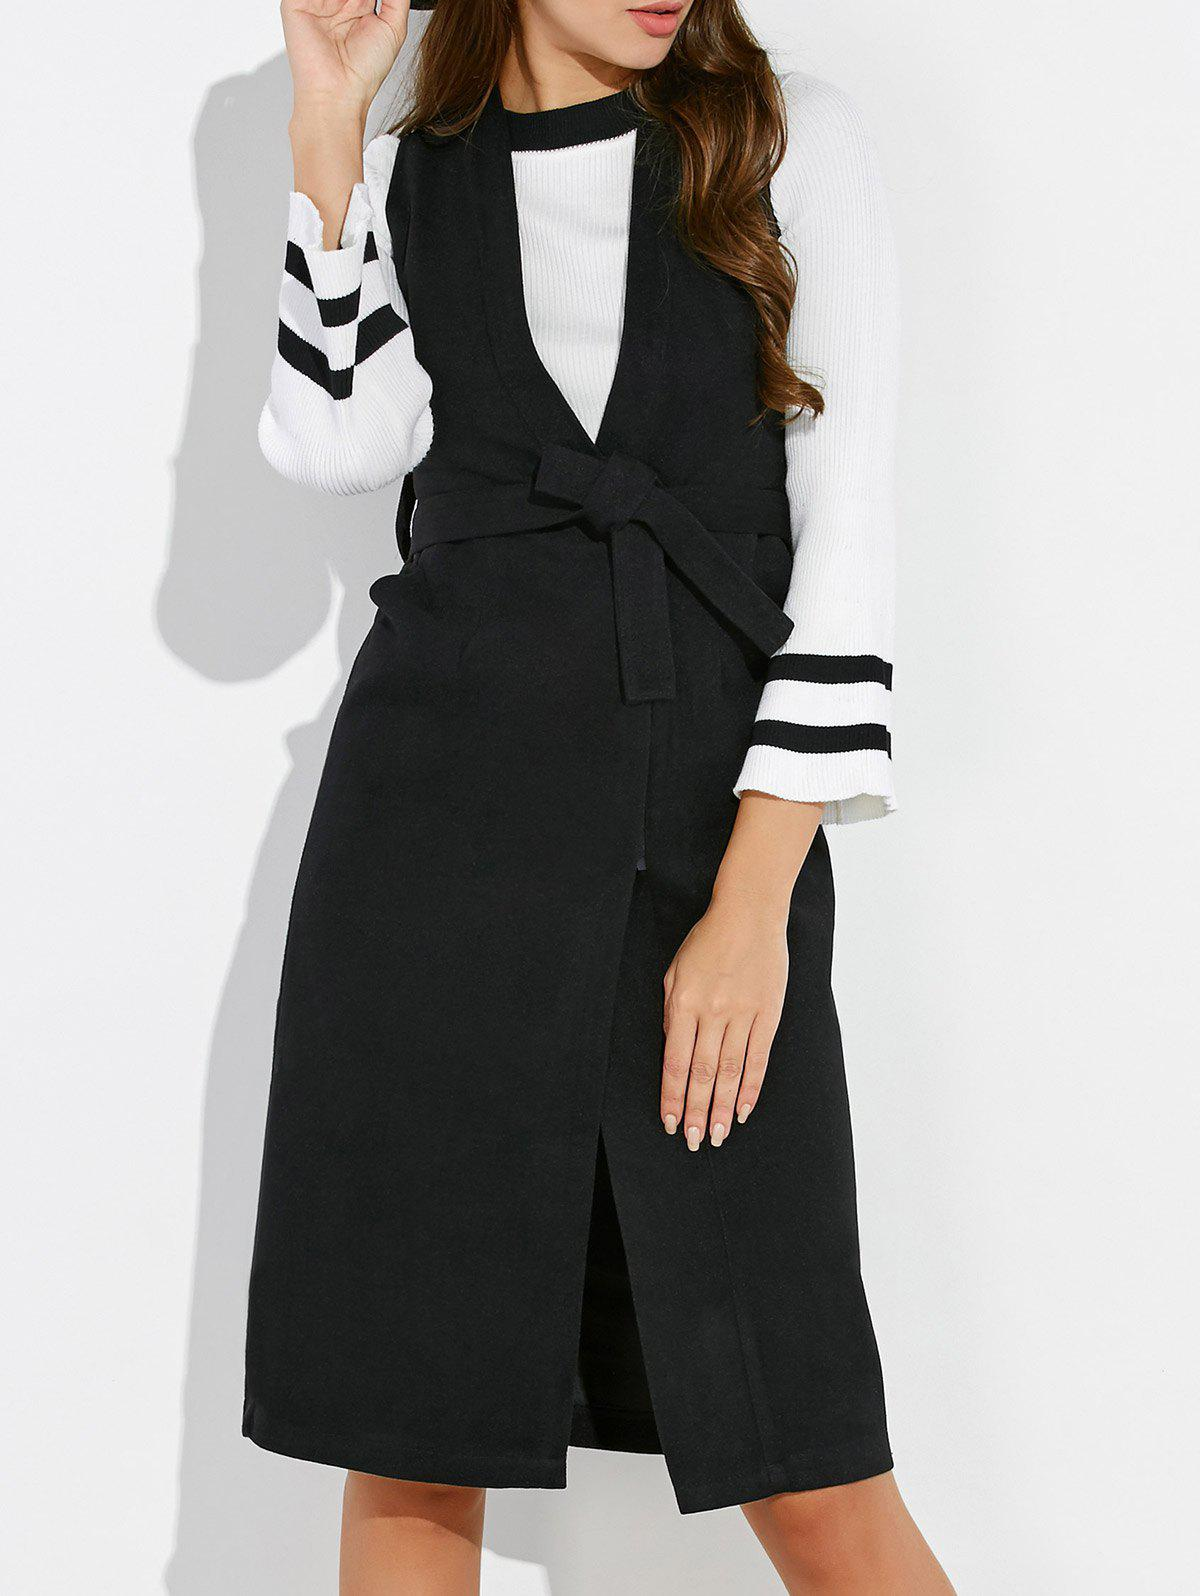 Bell Sleeve T-Shirt with Belted Waistcoat - WHITE/BLACK M